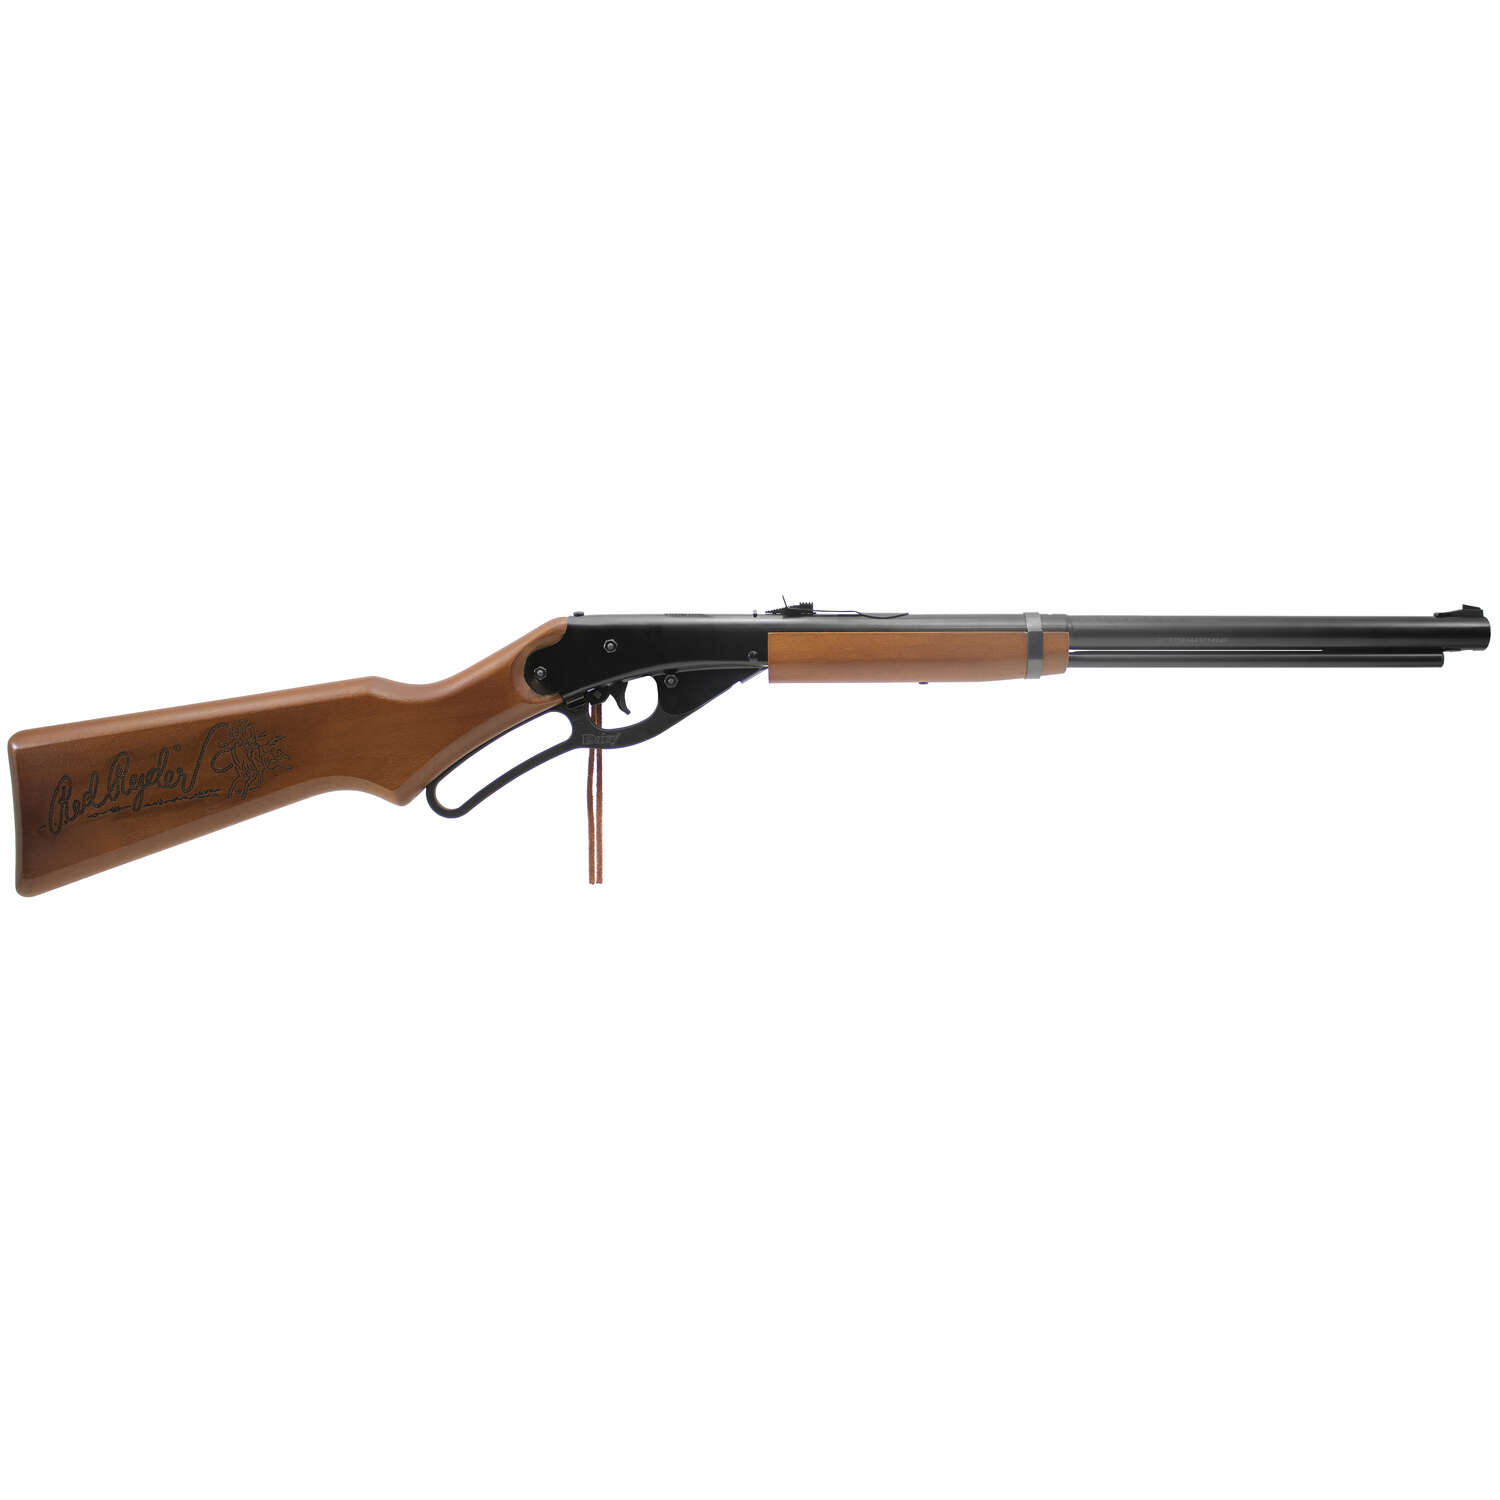 Daisy  Red Ryder  0.177 Caliber 350 fps Air Rifle  1 pk